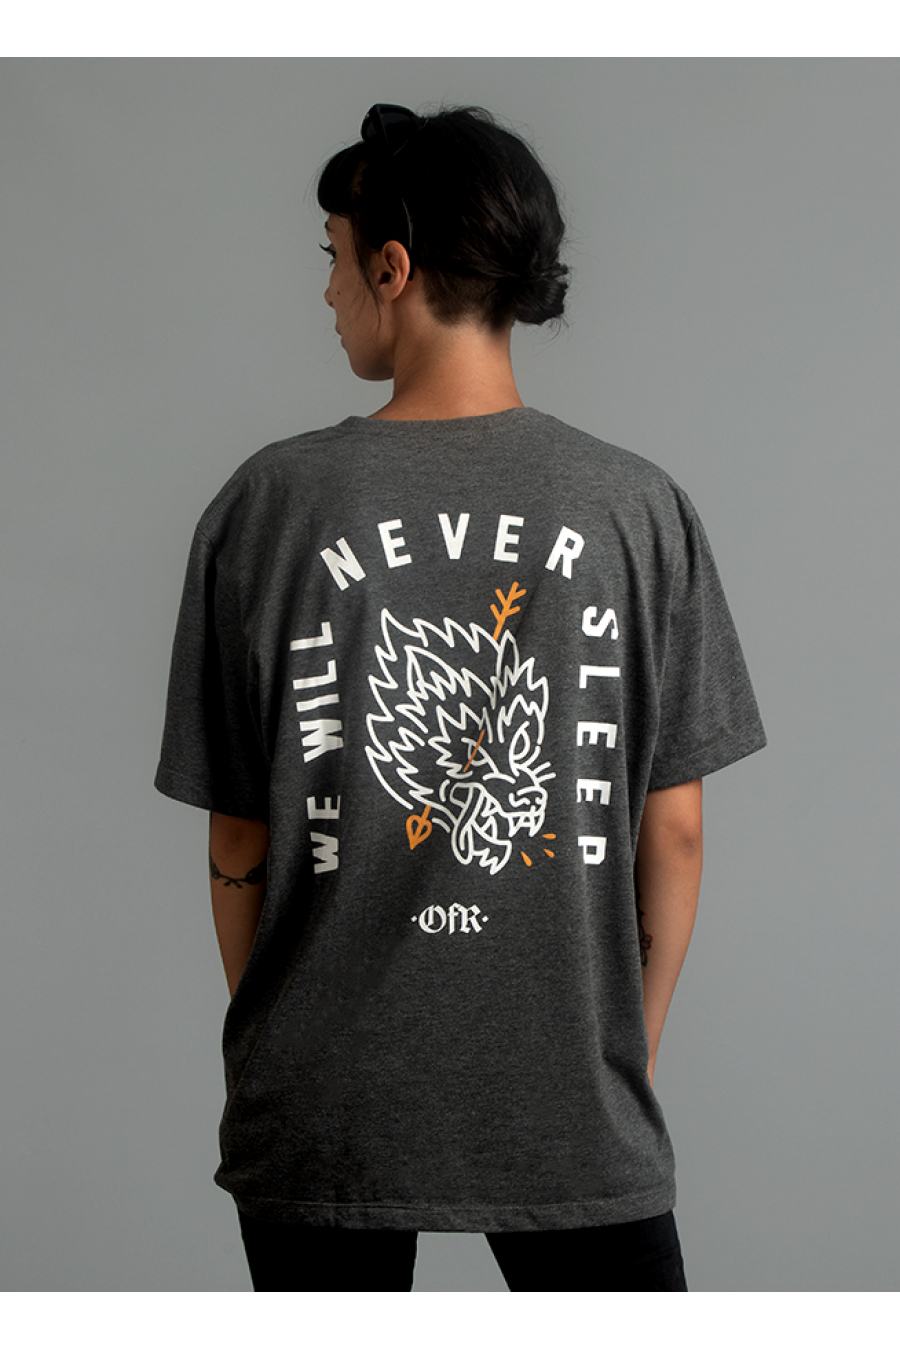 We Will Never Sleep Tshirt